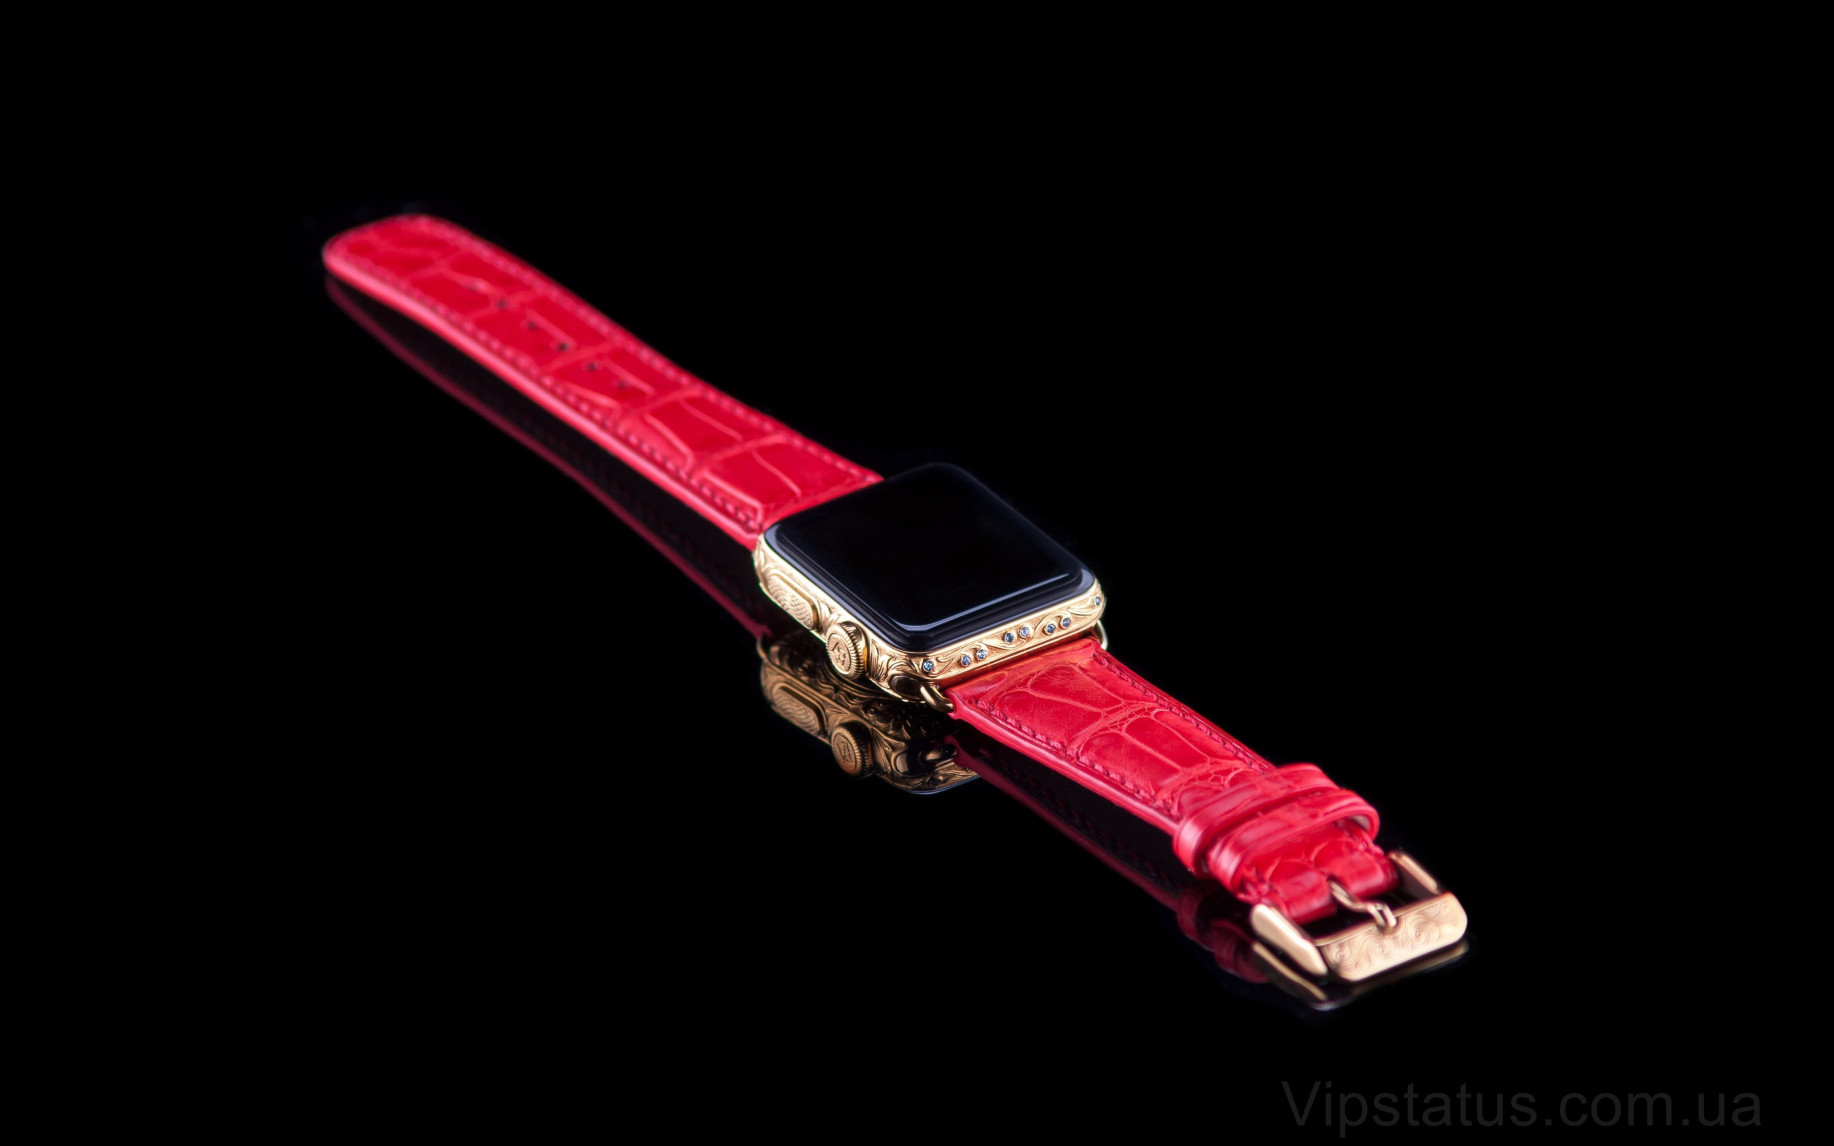 Элитный Queen's Choice Apple Watch 5 Sapphire Queen's Choice Apple Watch 5 Sapphire изображение 7